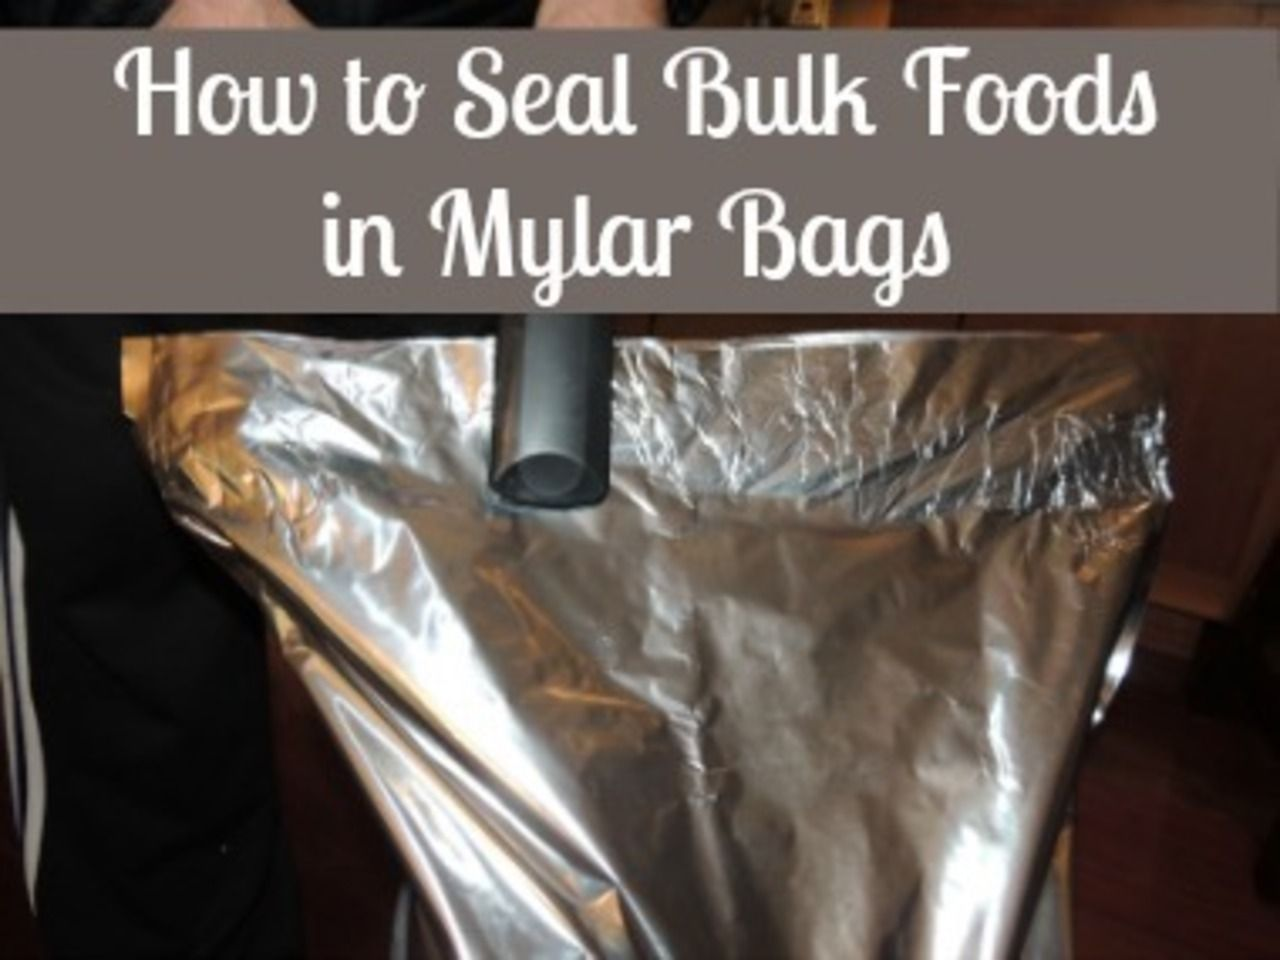 Learn how to seal food in Mylar bags with oxygen absorbers. Save money on food storage! & How to Seal Food in Mylar Bags | Pinterest | Food storage Storage ...